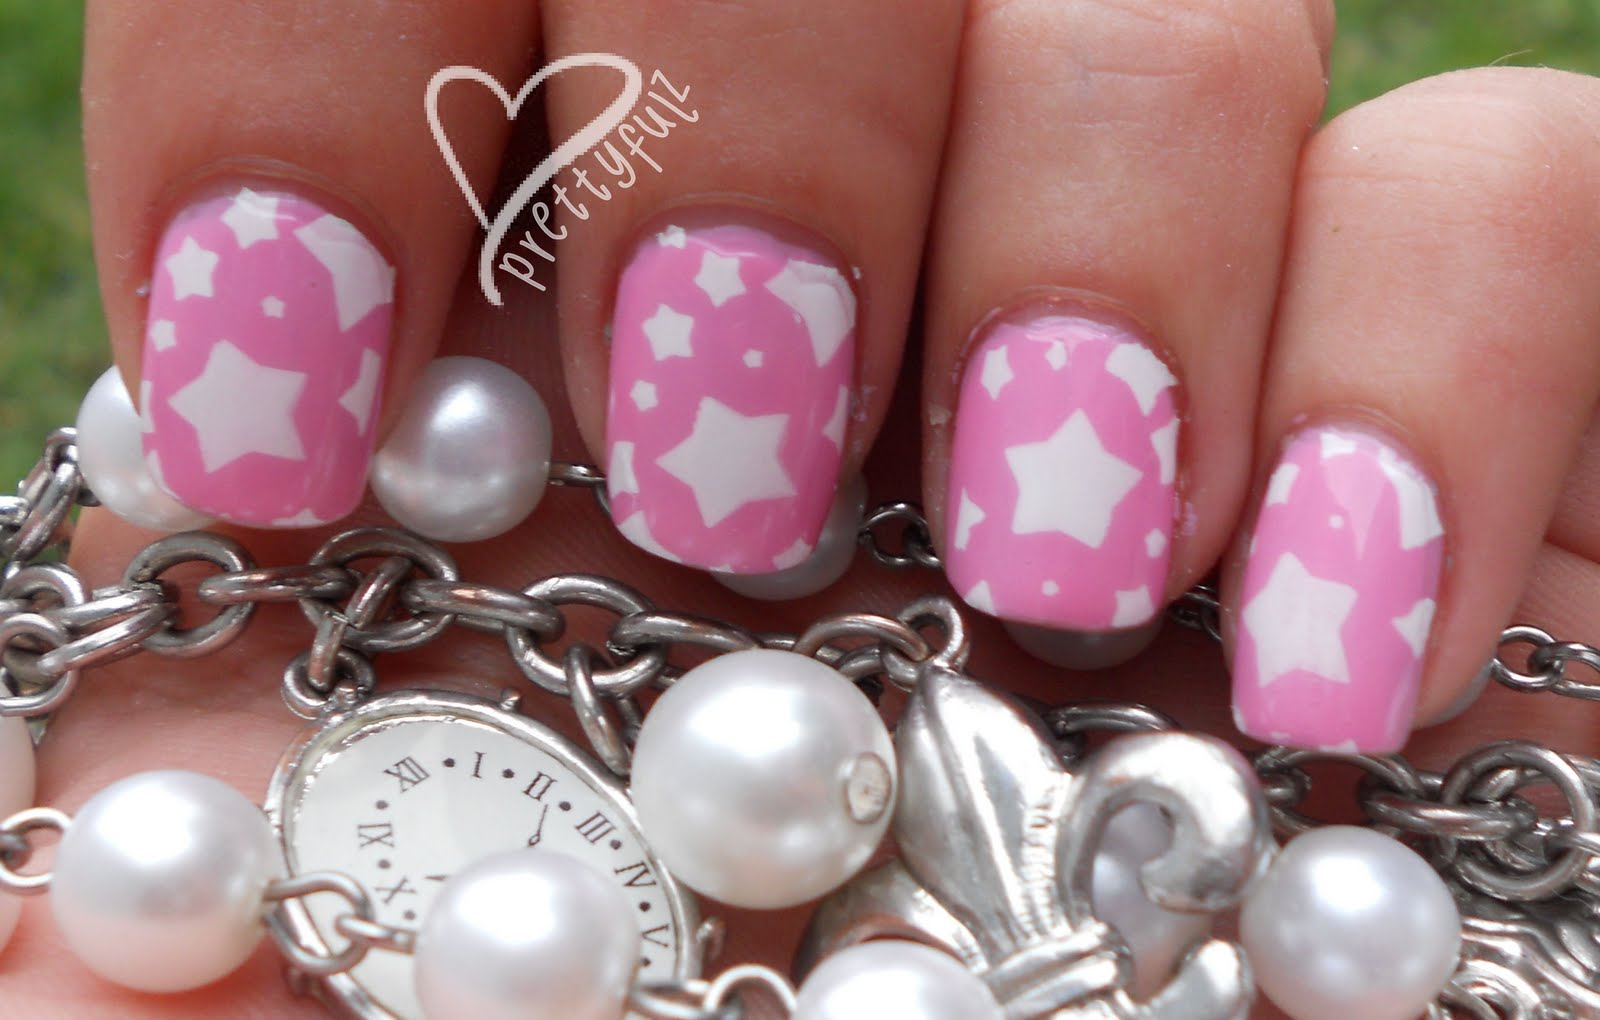 Super cute pink &; white star nail art design for short nails!